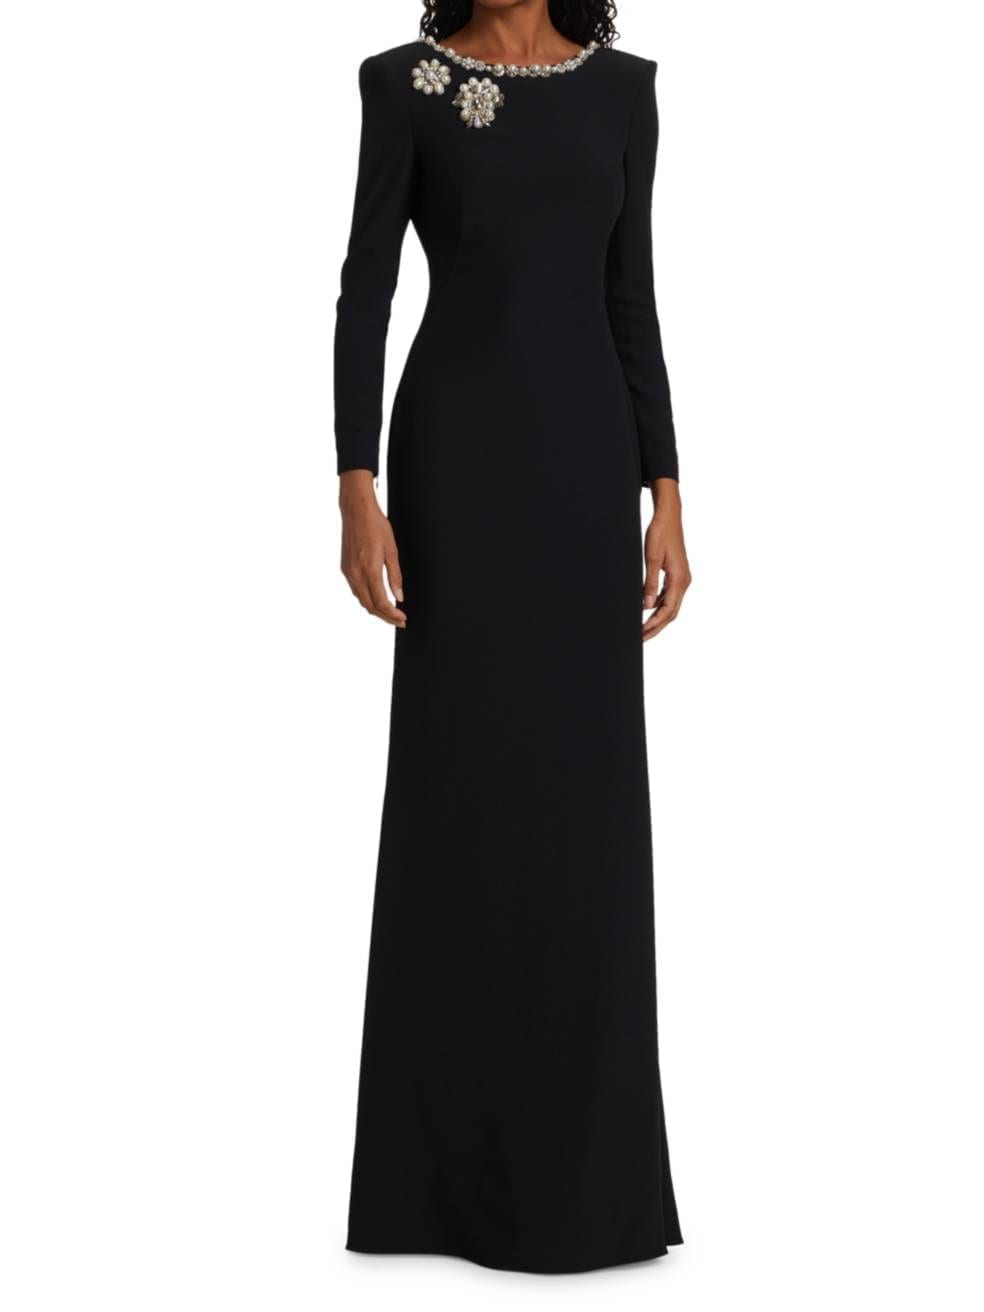 ALEXANDER MCQUEEN Pearl-Embellished Long-Sleeve Gown